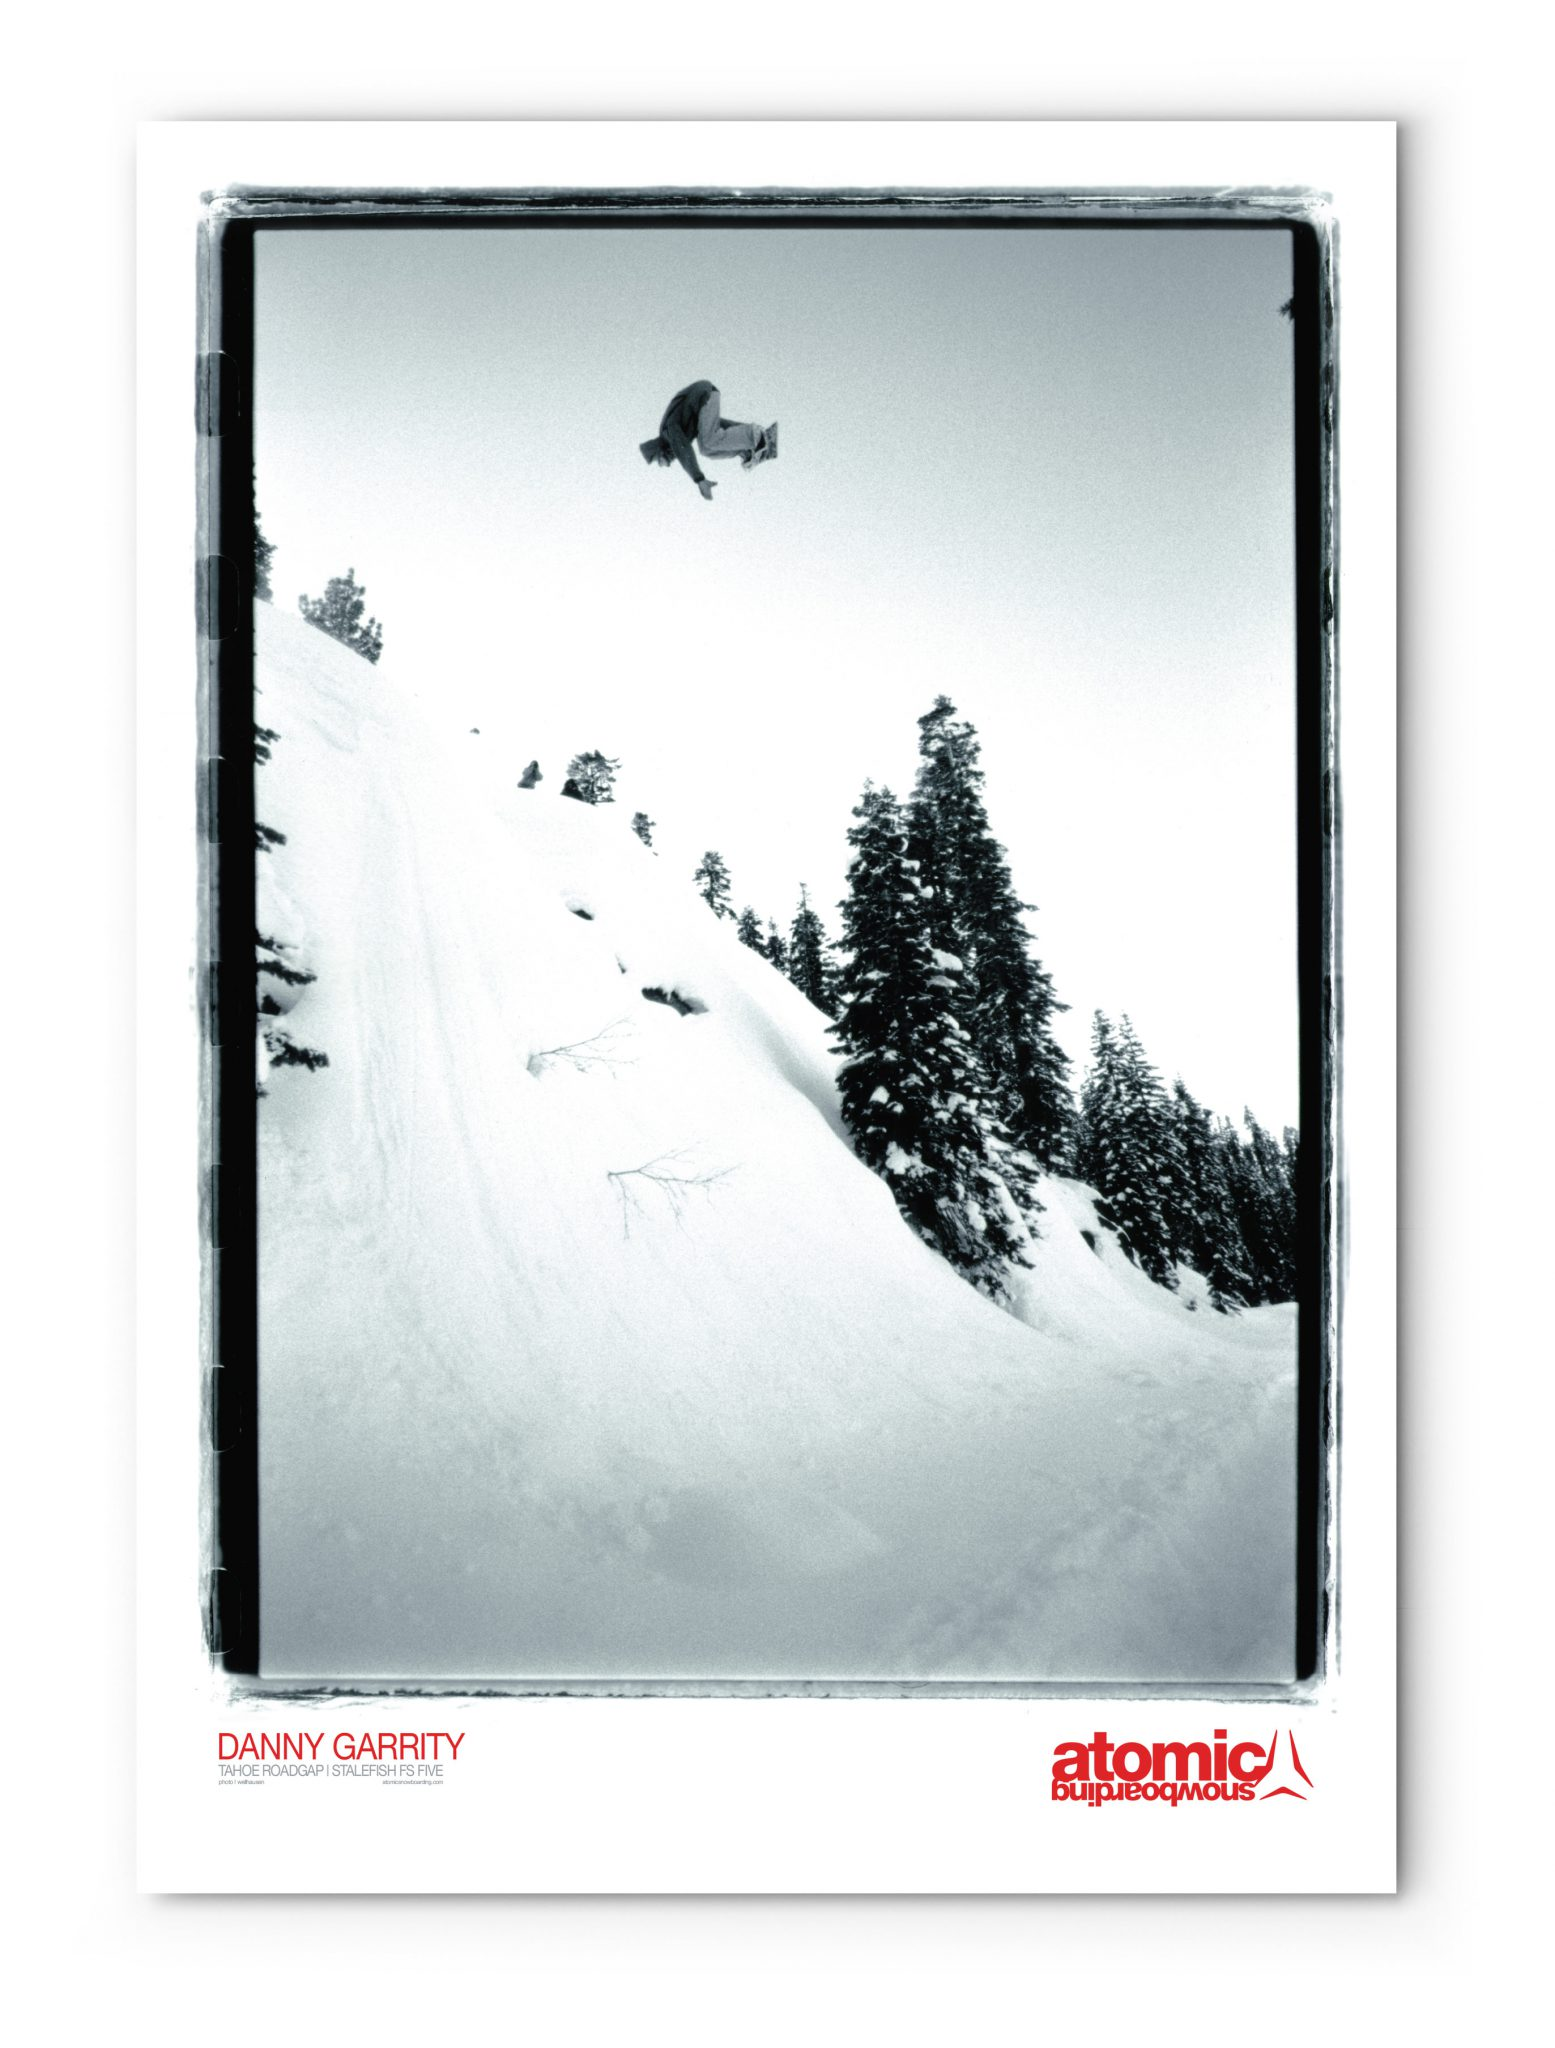 Atomic Snowboarding - Promotional Poster (Danny Garrity)